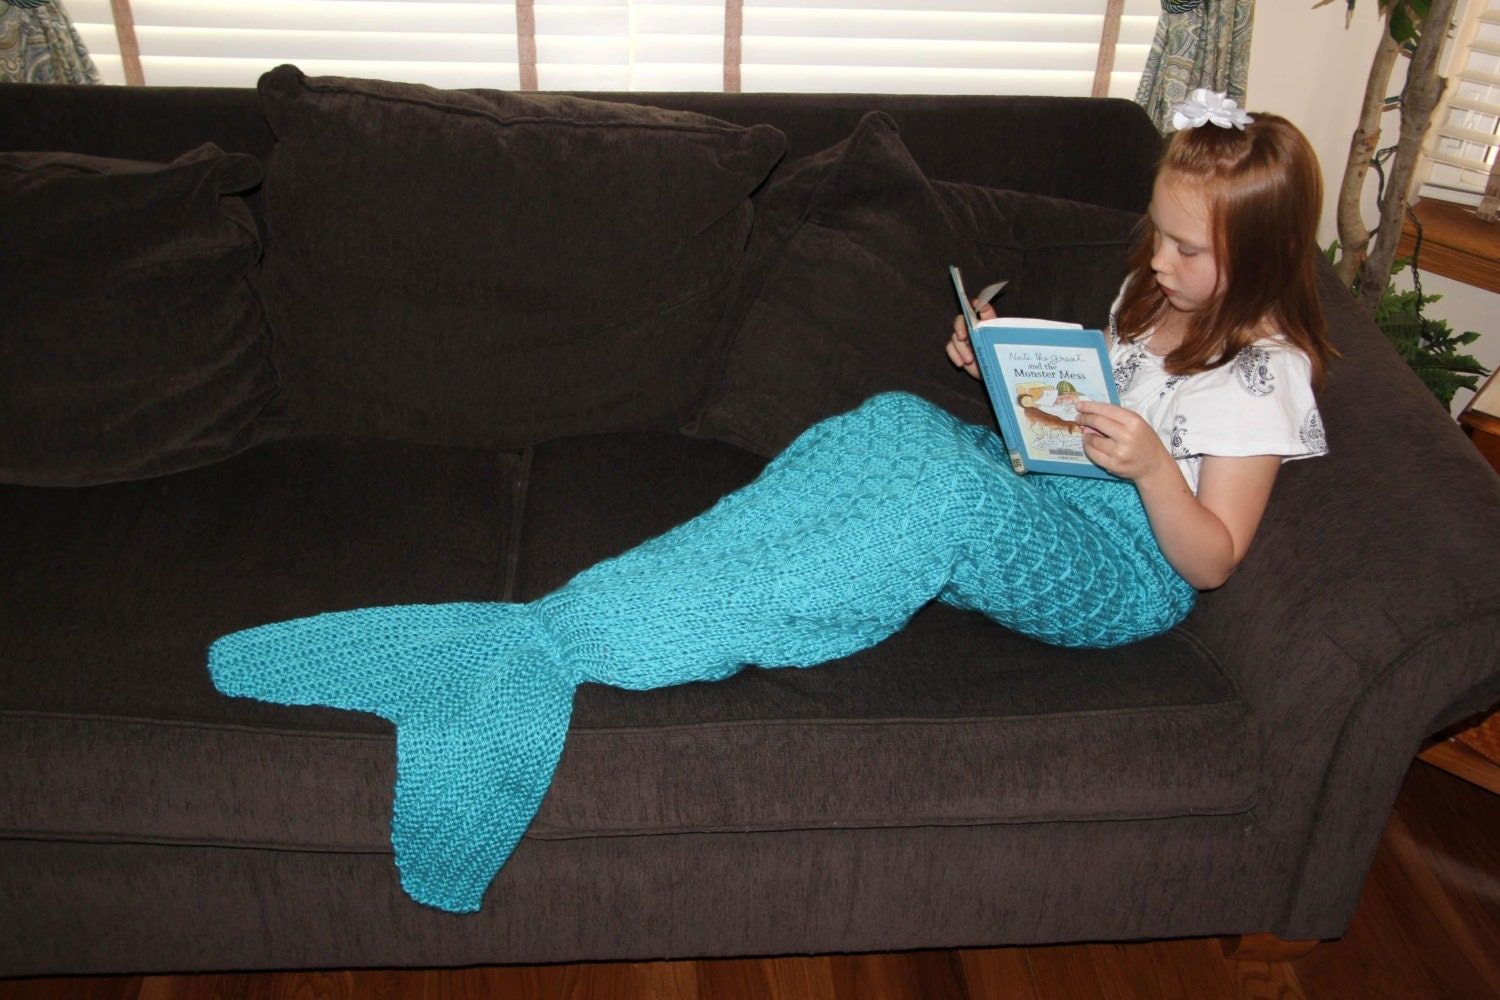 Free Knitting Pattern For Child s Mermaid Blanket : Mermaid Tail Lapghan Blanket Knitting Pattern for Children